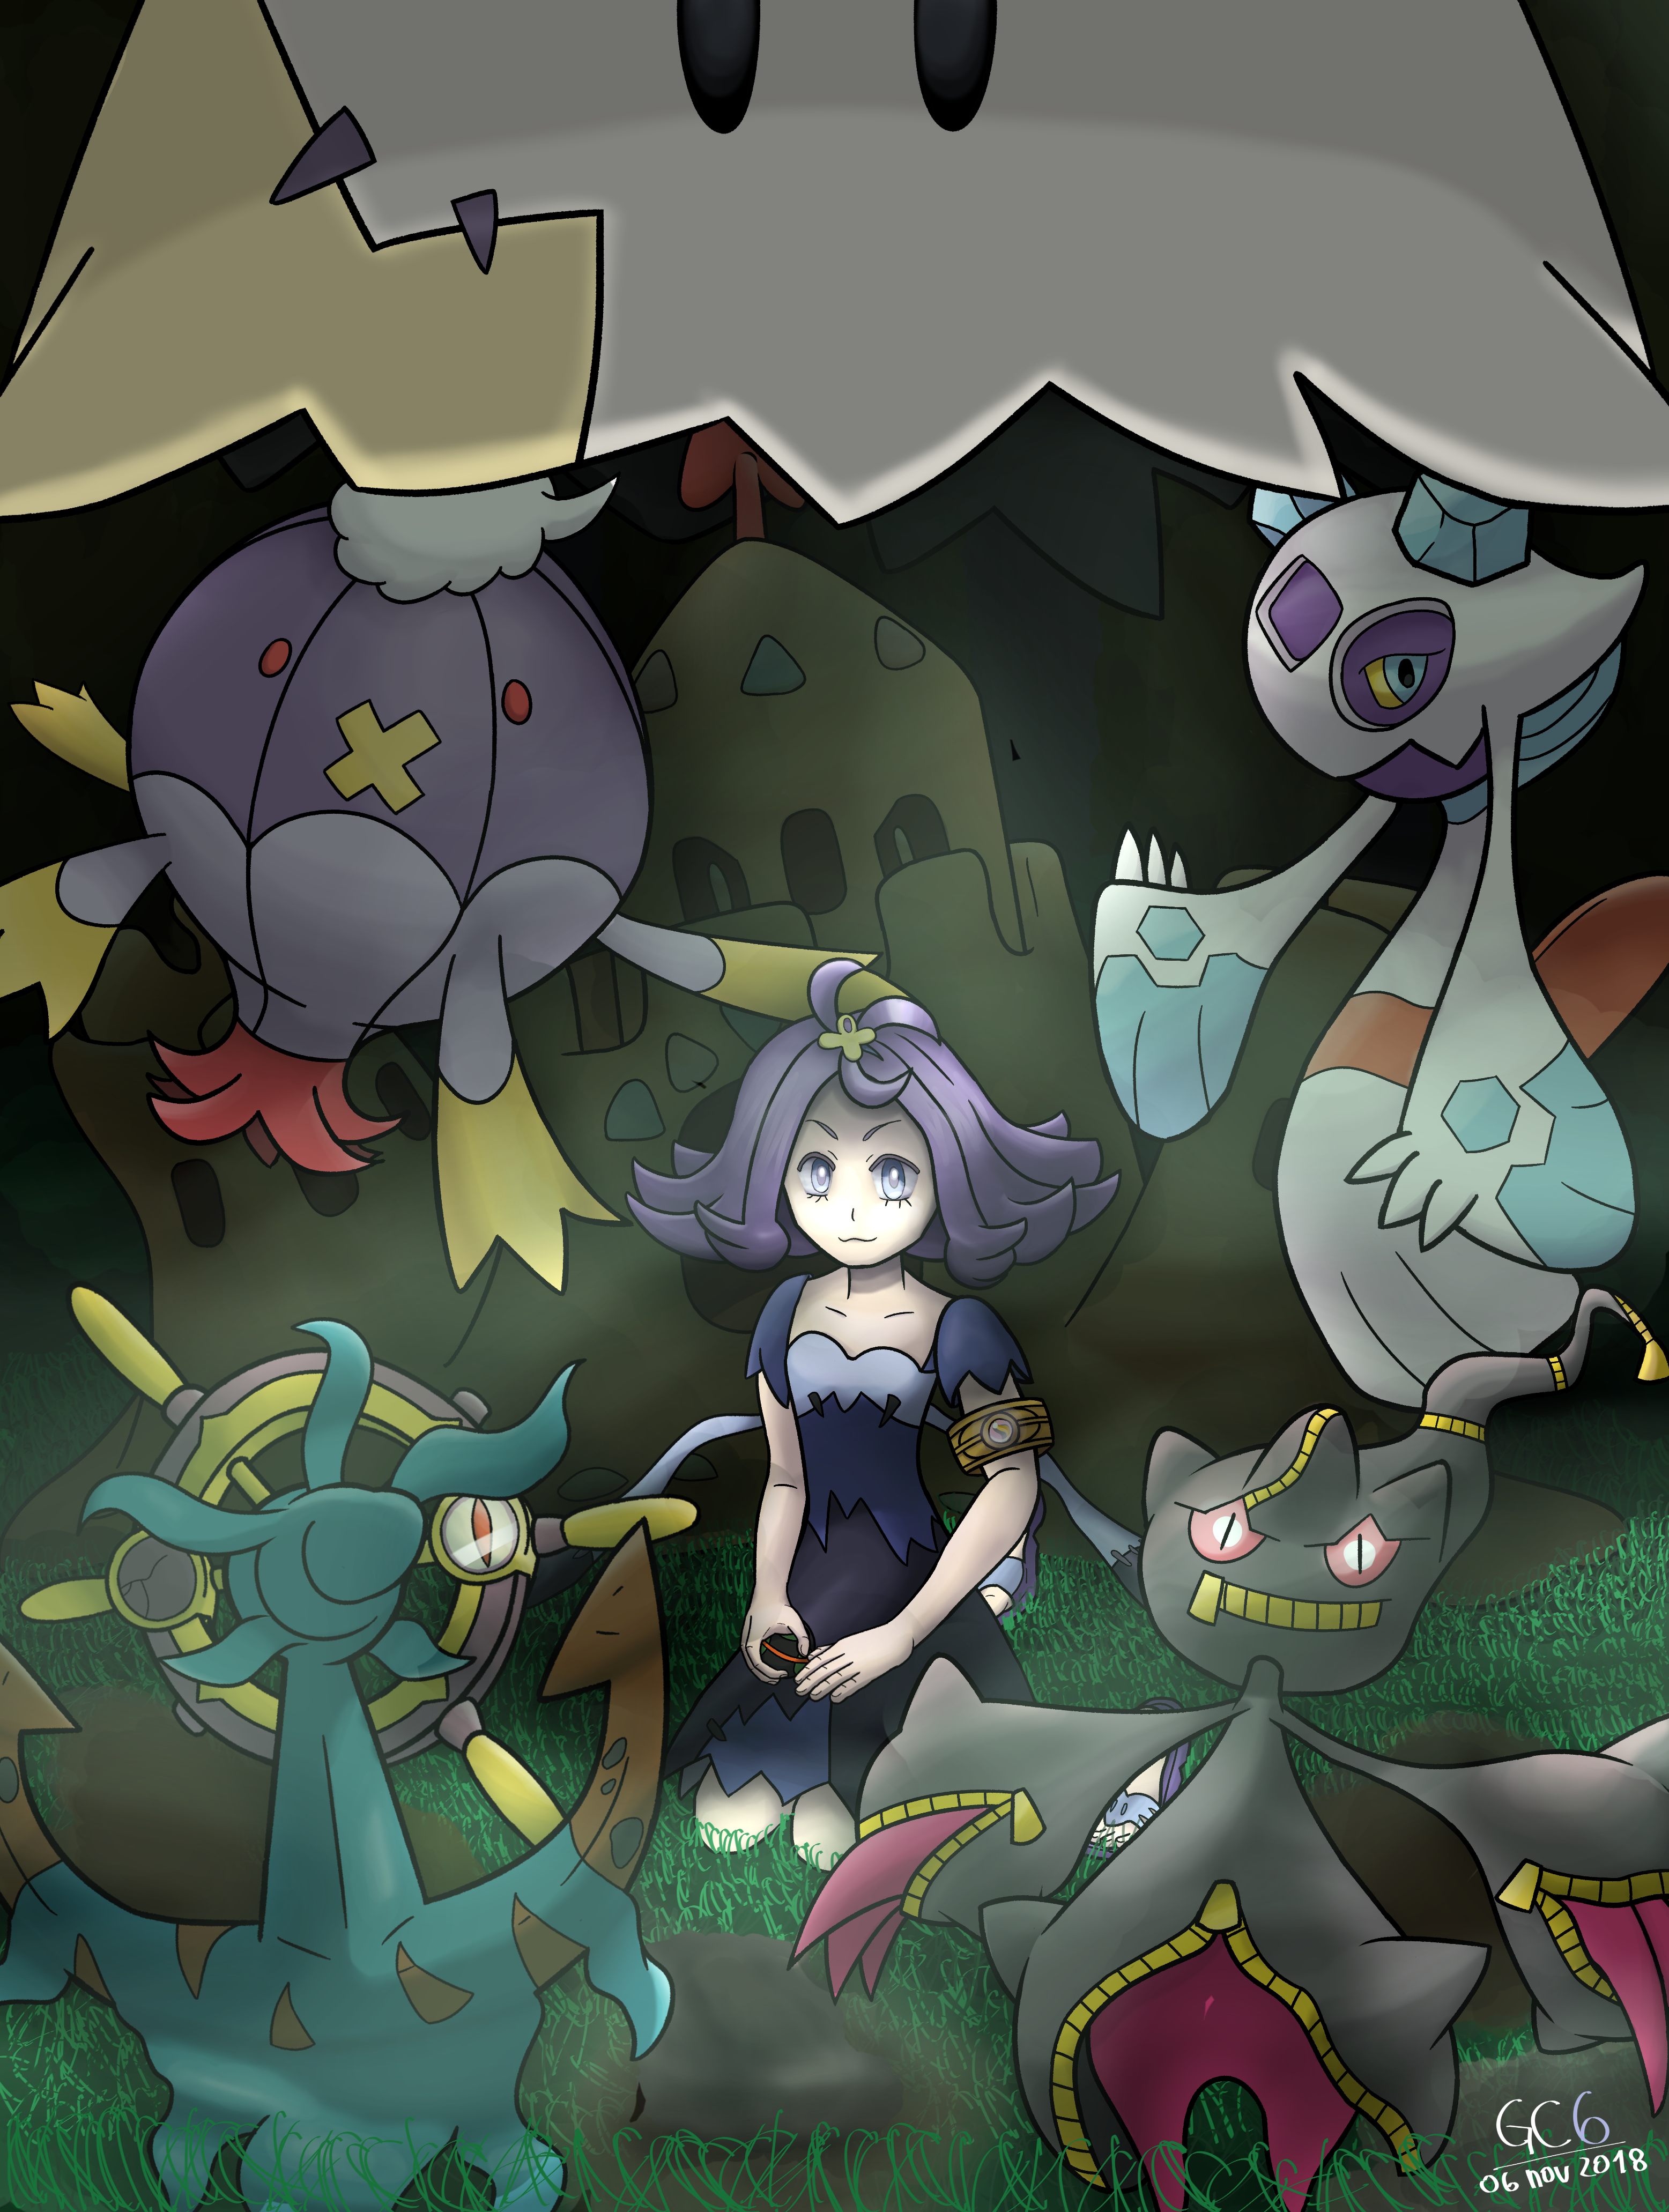 Ultra Spooky Acerola! by GC6